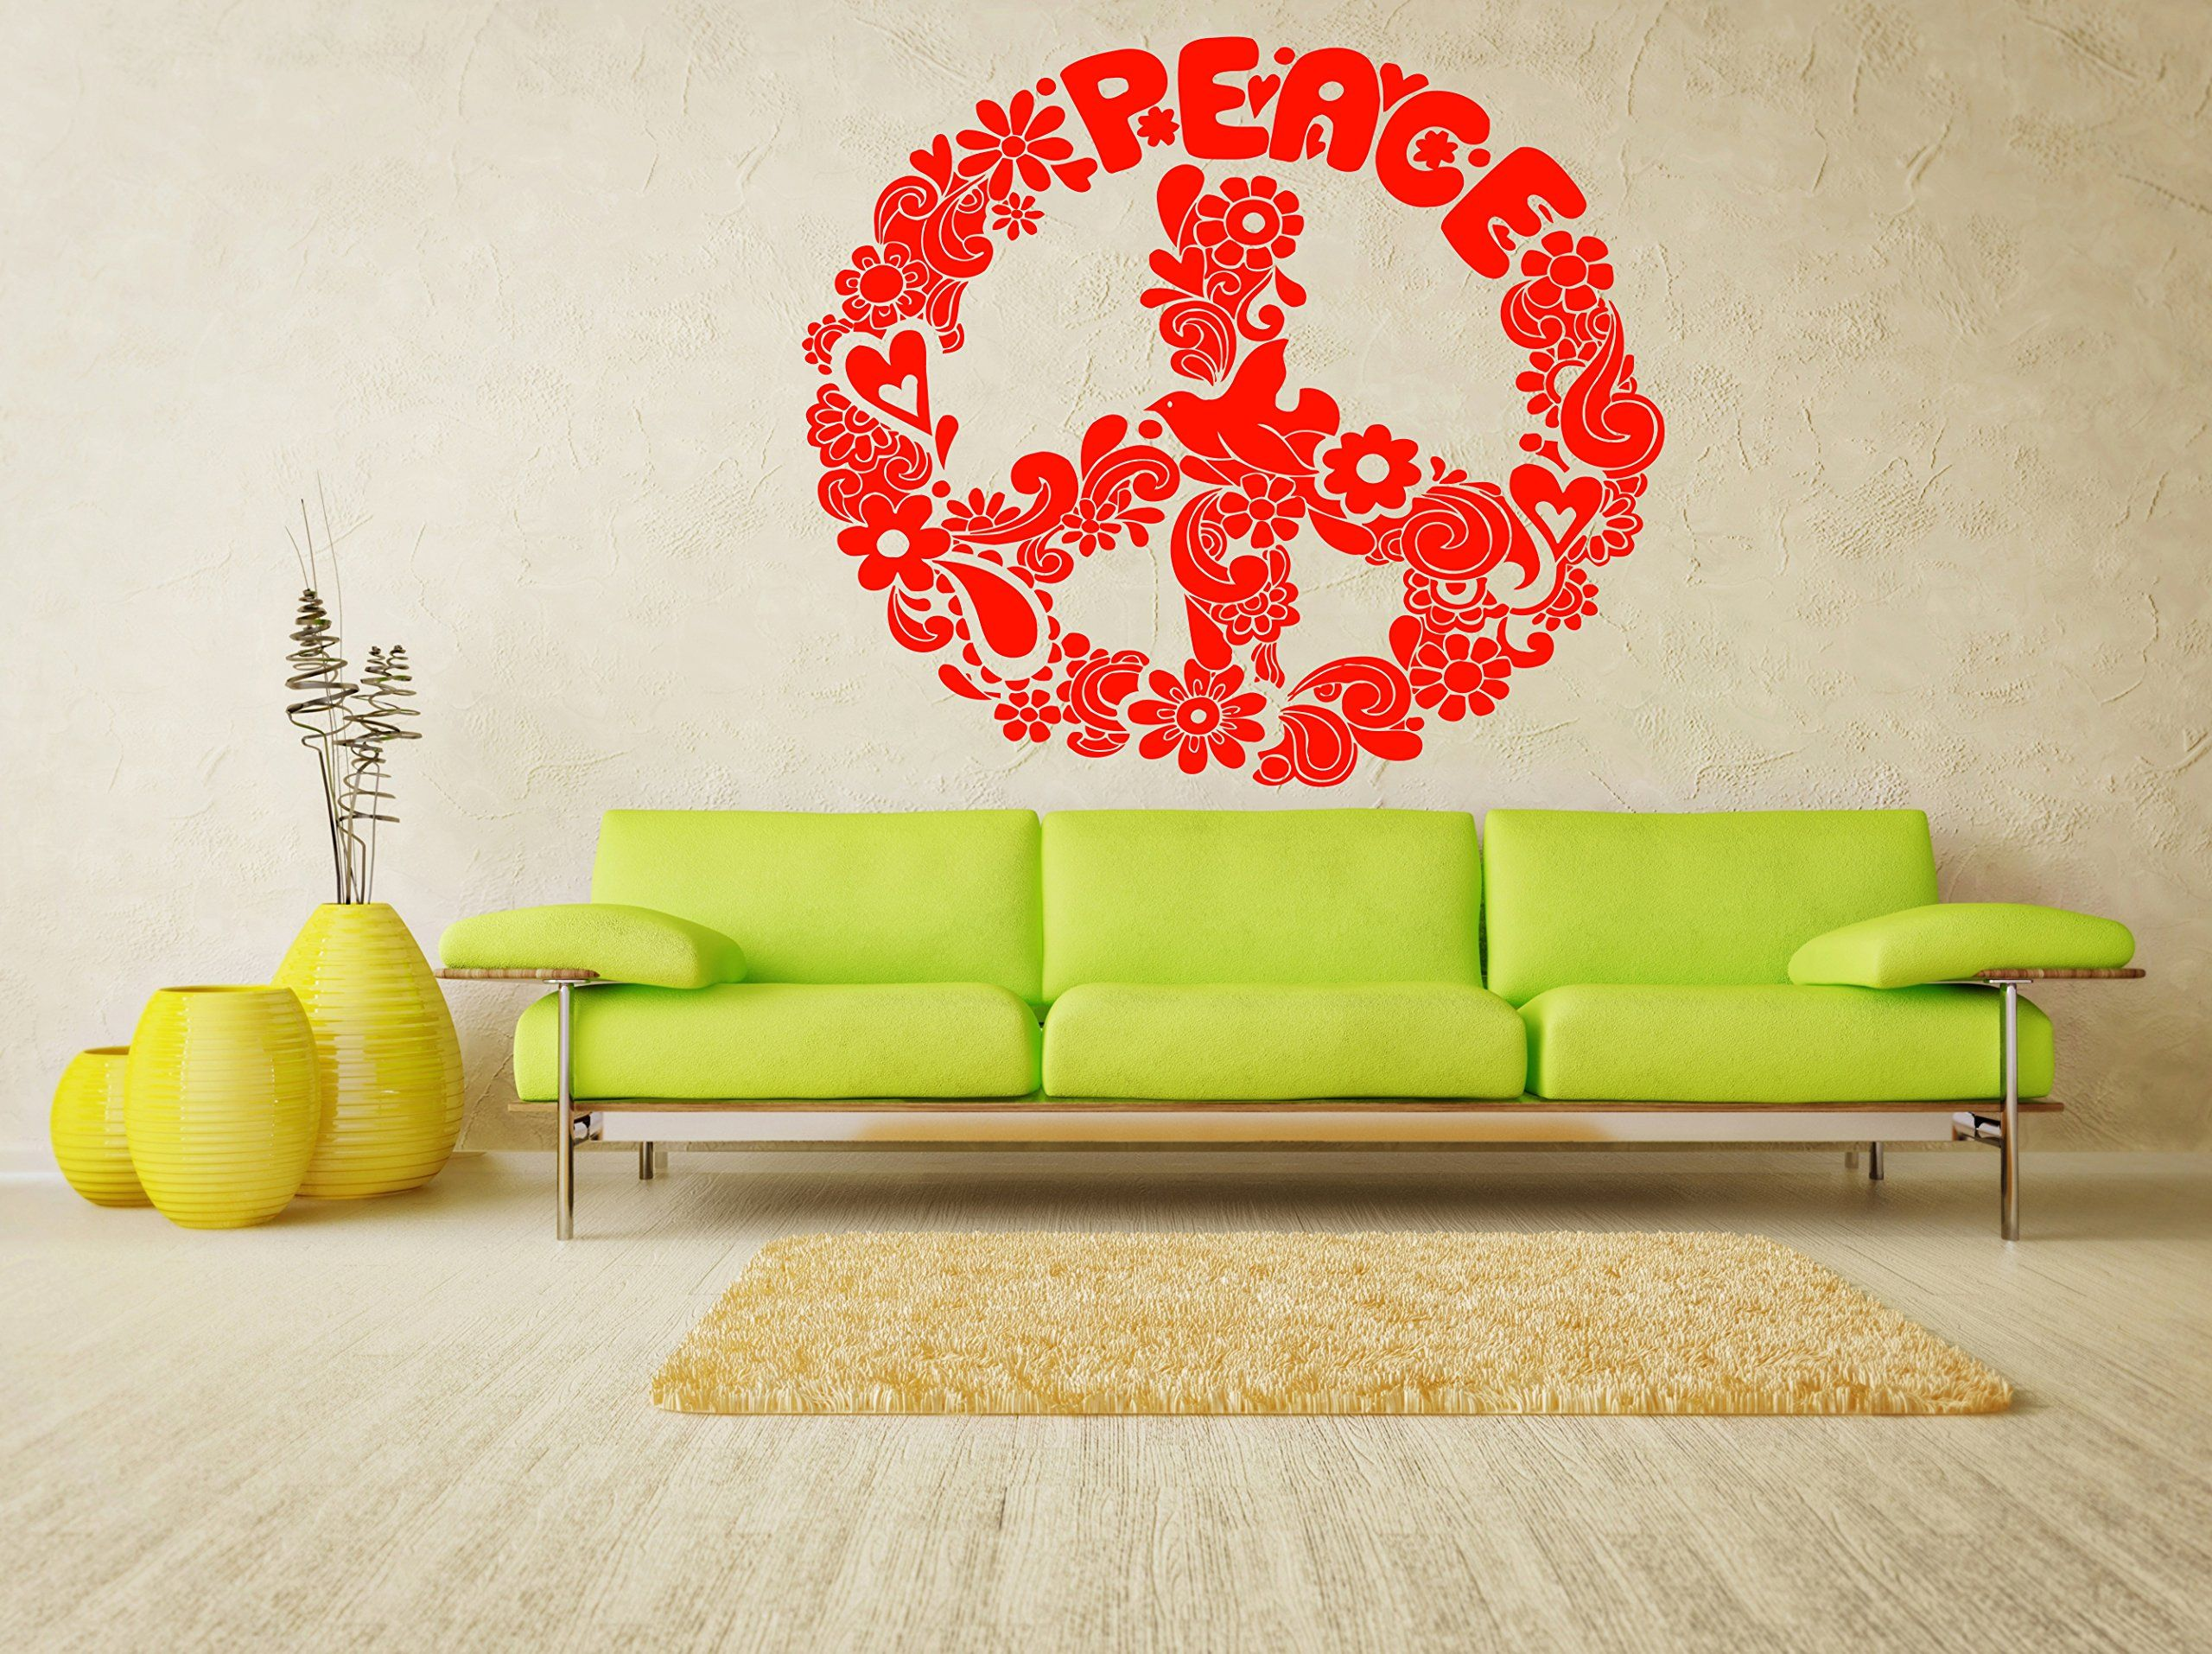 Peace Sign Bedroom Decor Wall Room Decor Art Vinyl Decal Sticker Mural Peace Sign Large Big